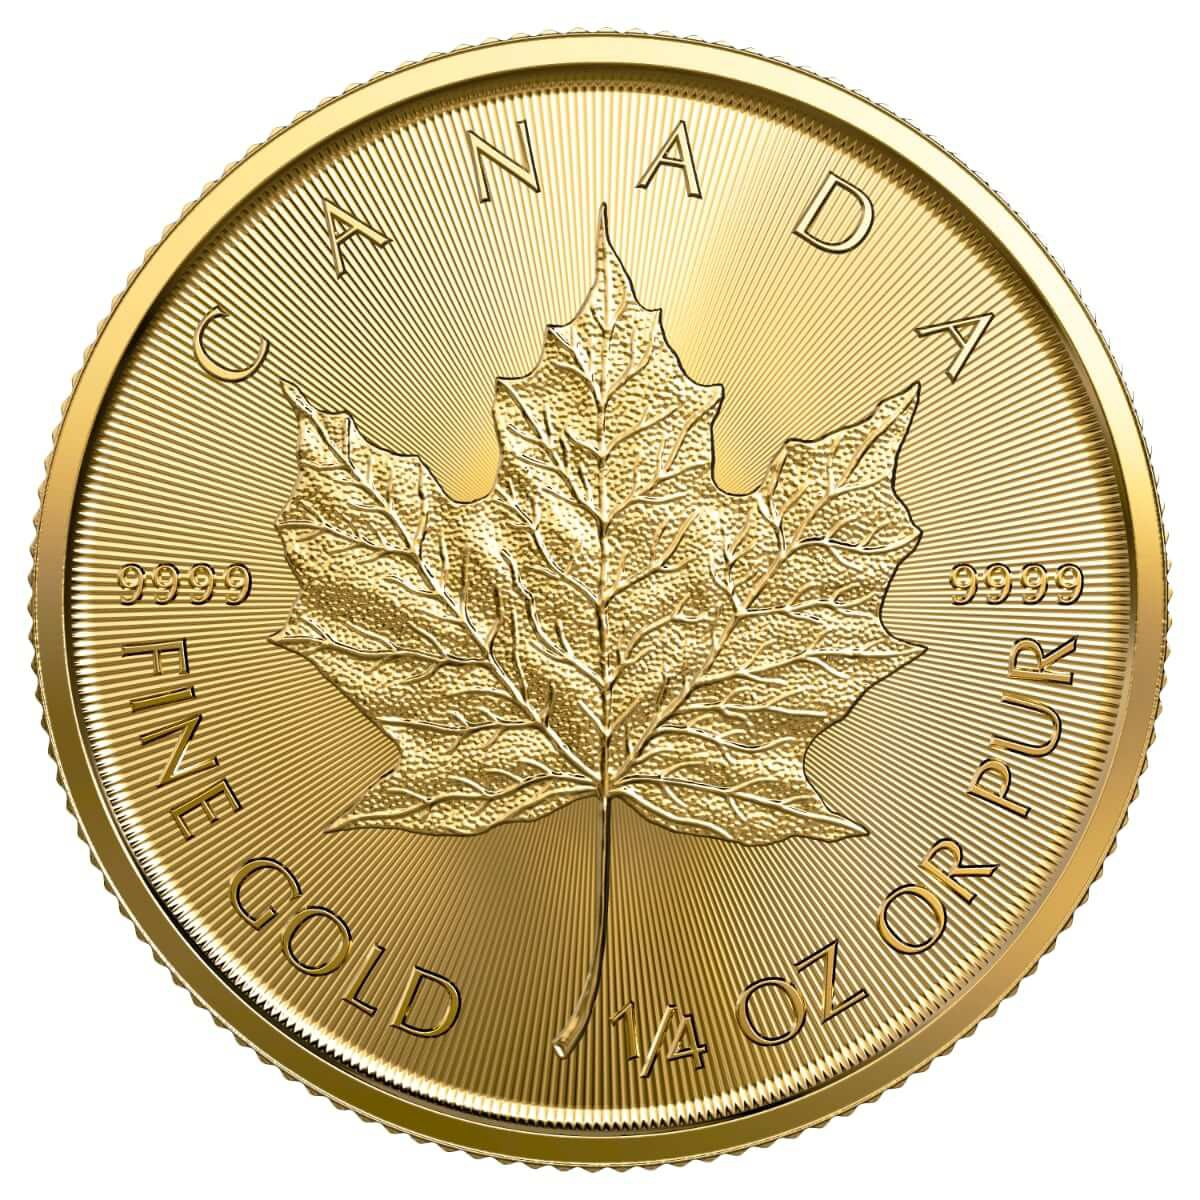 1/4 Ounce Gold Canadian Maple Leaf 2019